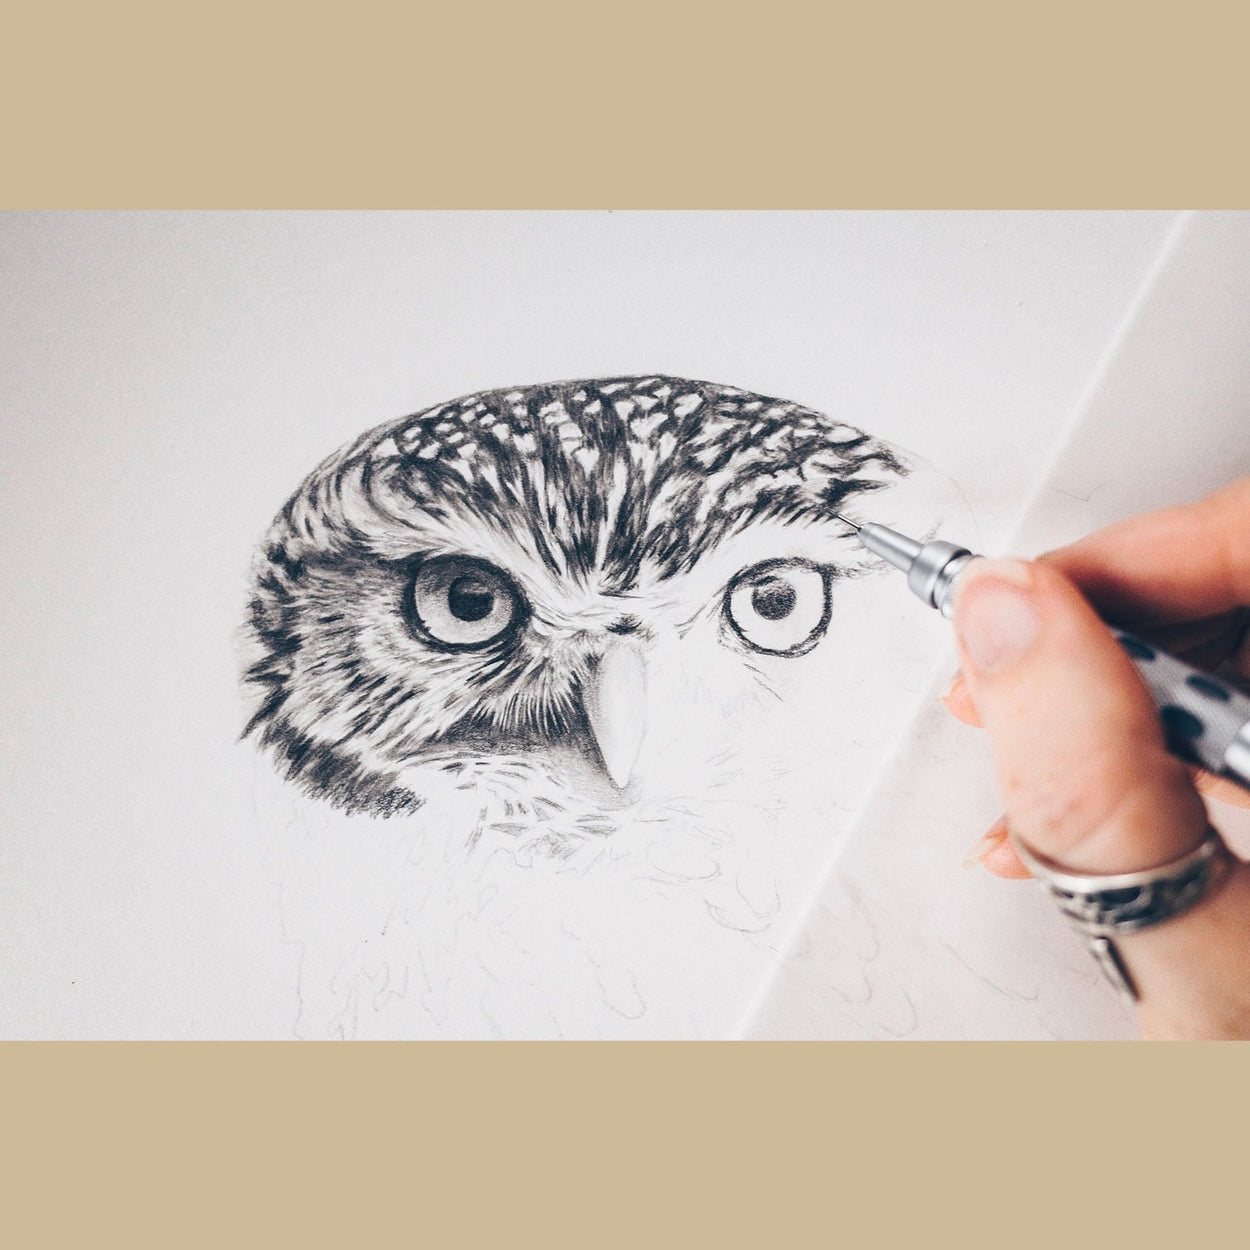 Little Owl Face Drawing Pencil - The Thriving Wild Jill Dimond